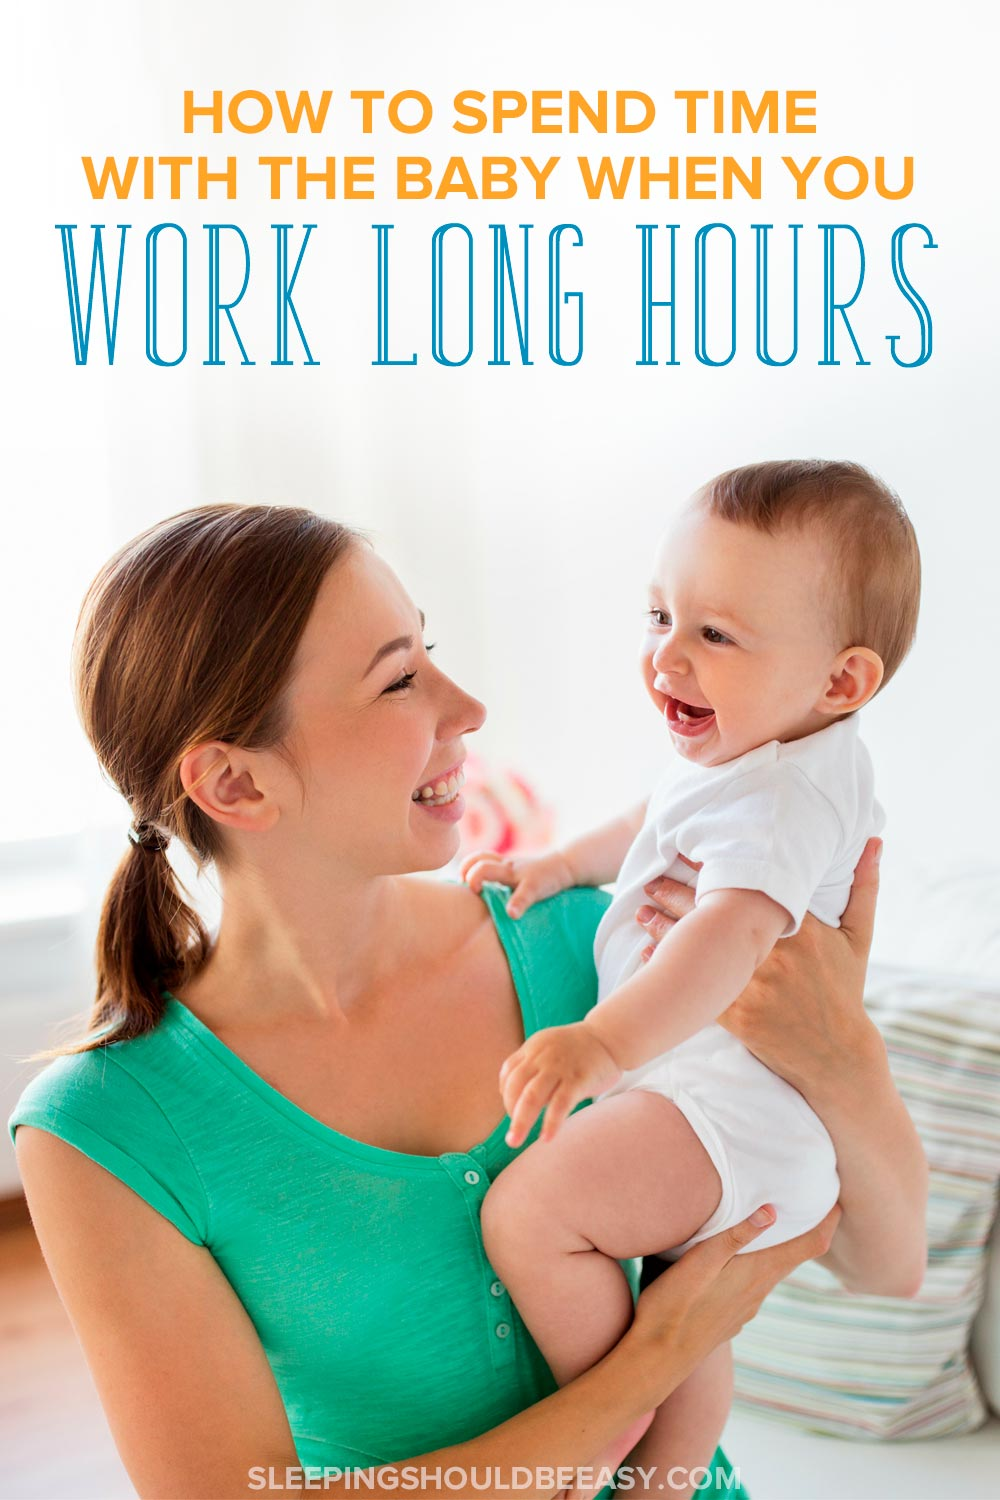 How to spend time with the baby when you work long hours